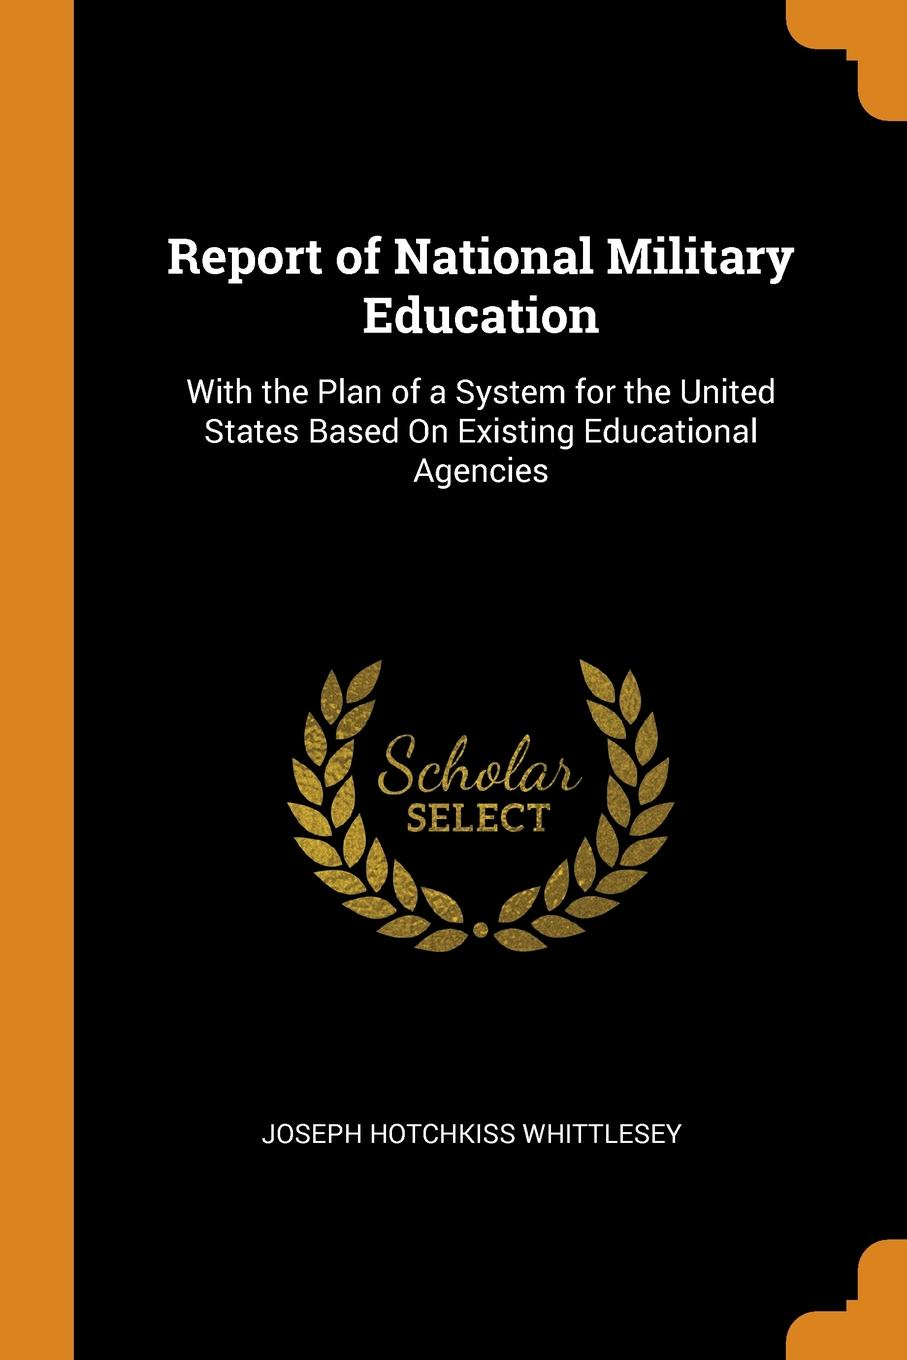 Joseph Hotchkiss Whittlesey Report of National Military Education. With the Plan of a System for the United States Based On Existing Educational Agencies